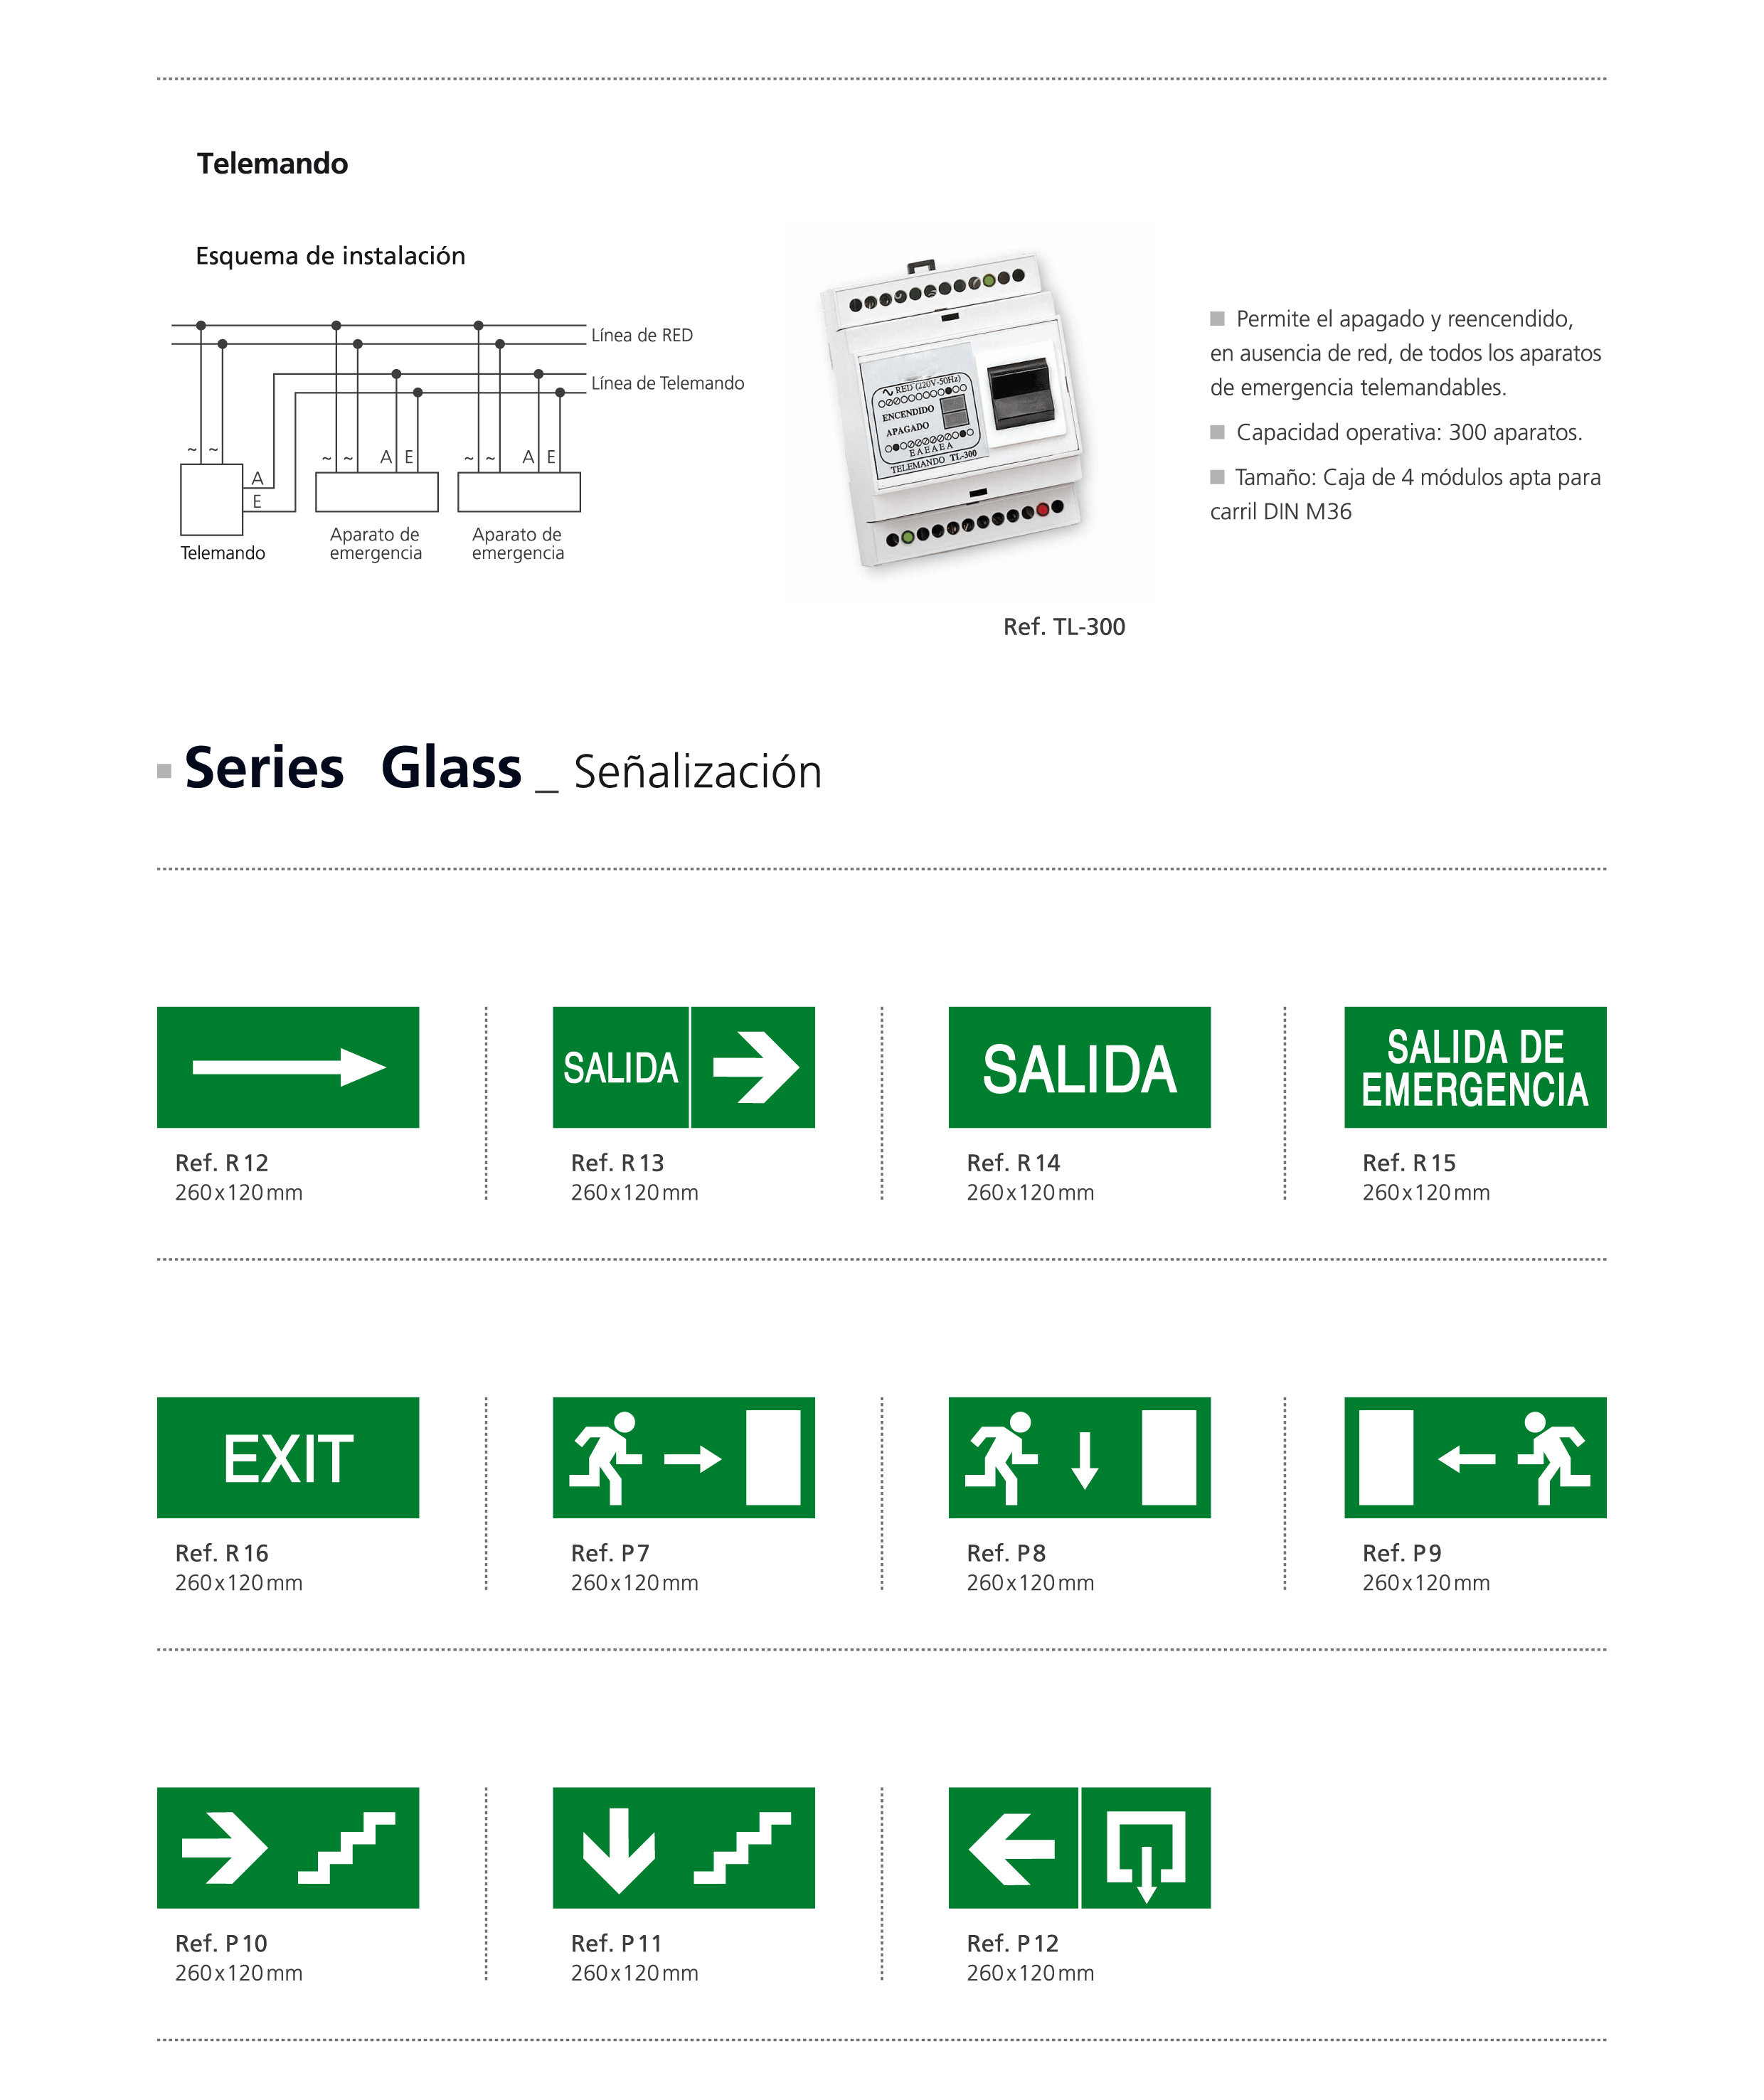 Emergencias_Serie_Glass_Senalizacion